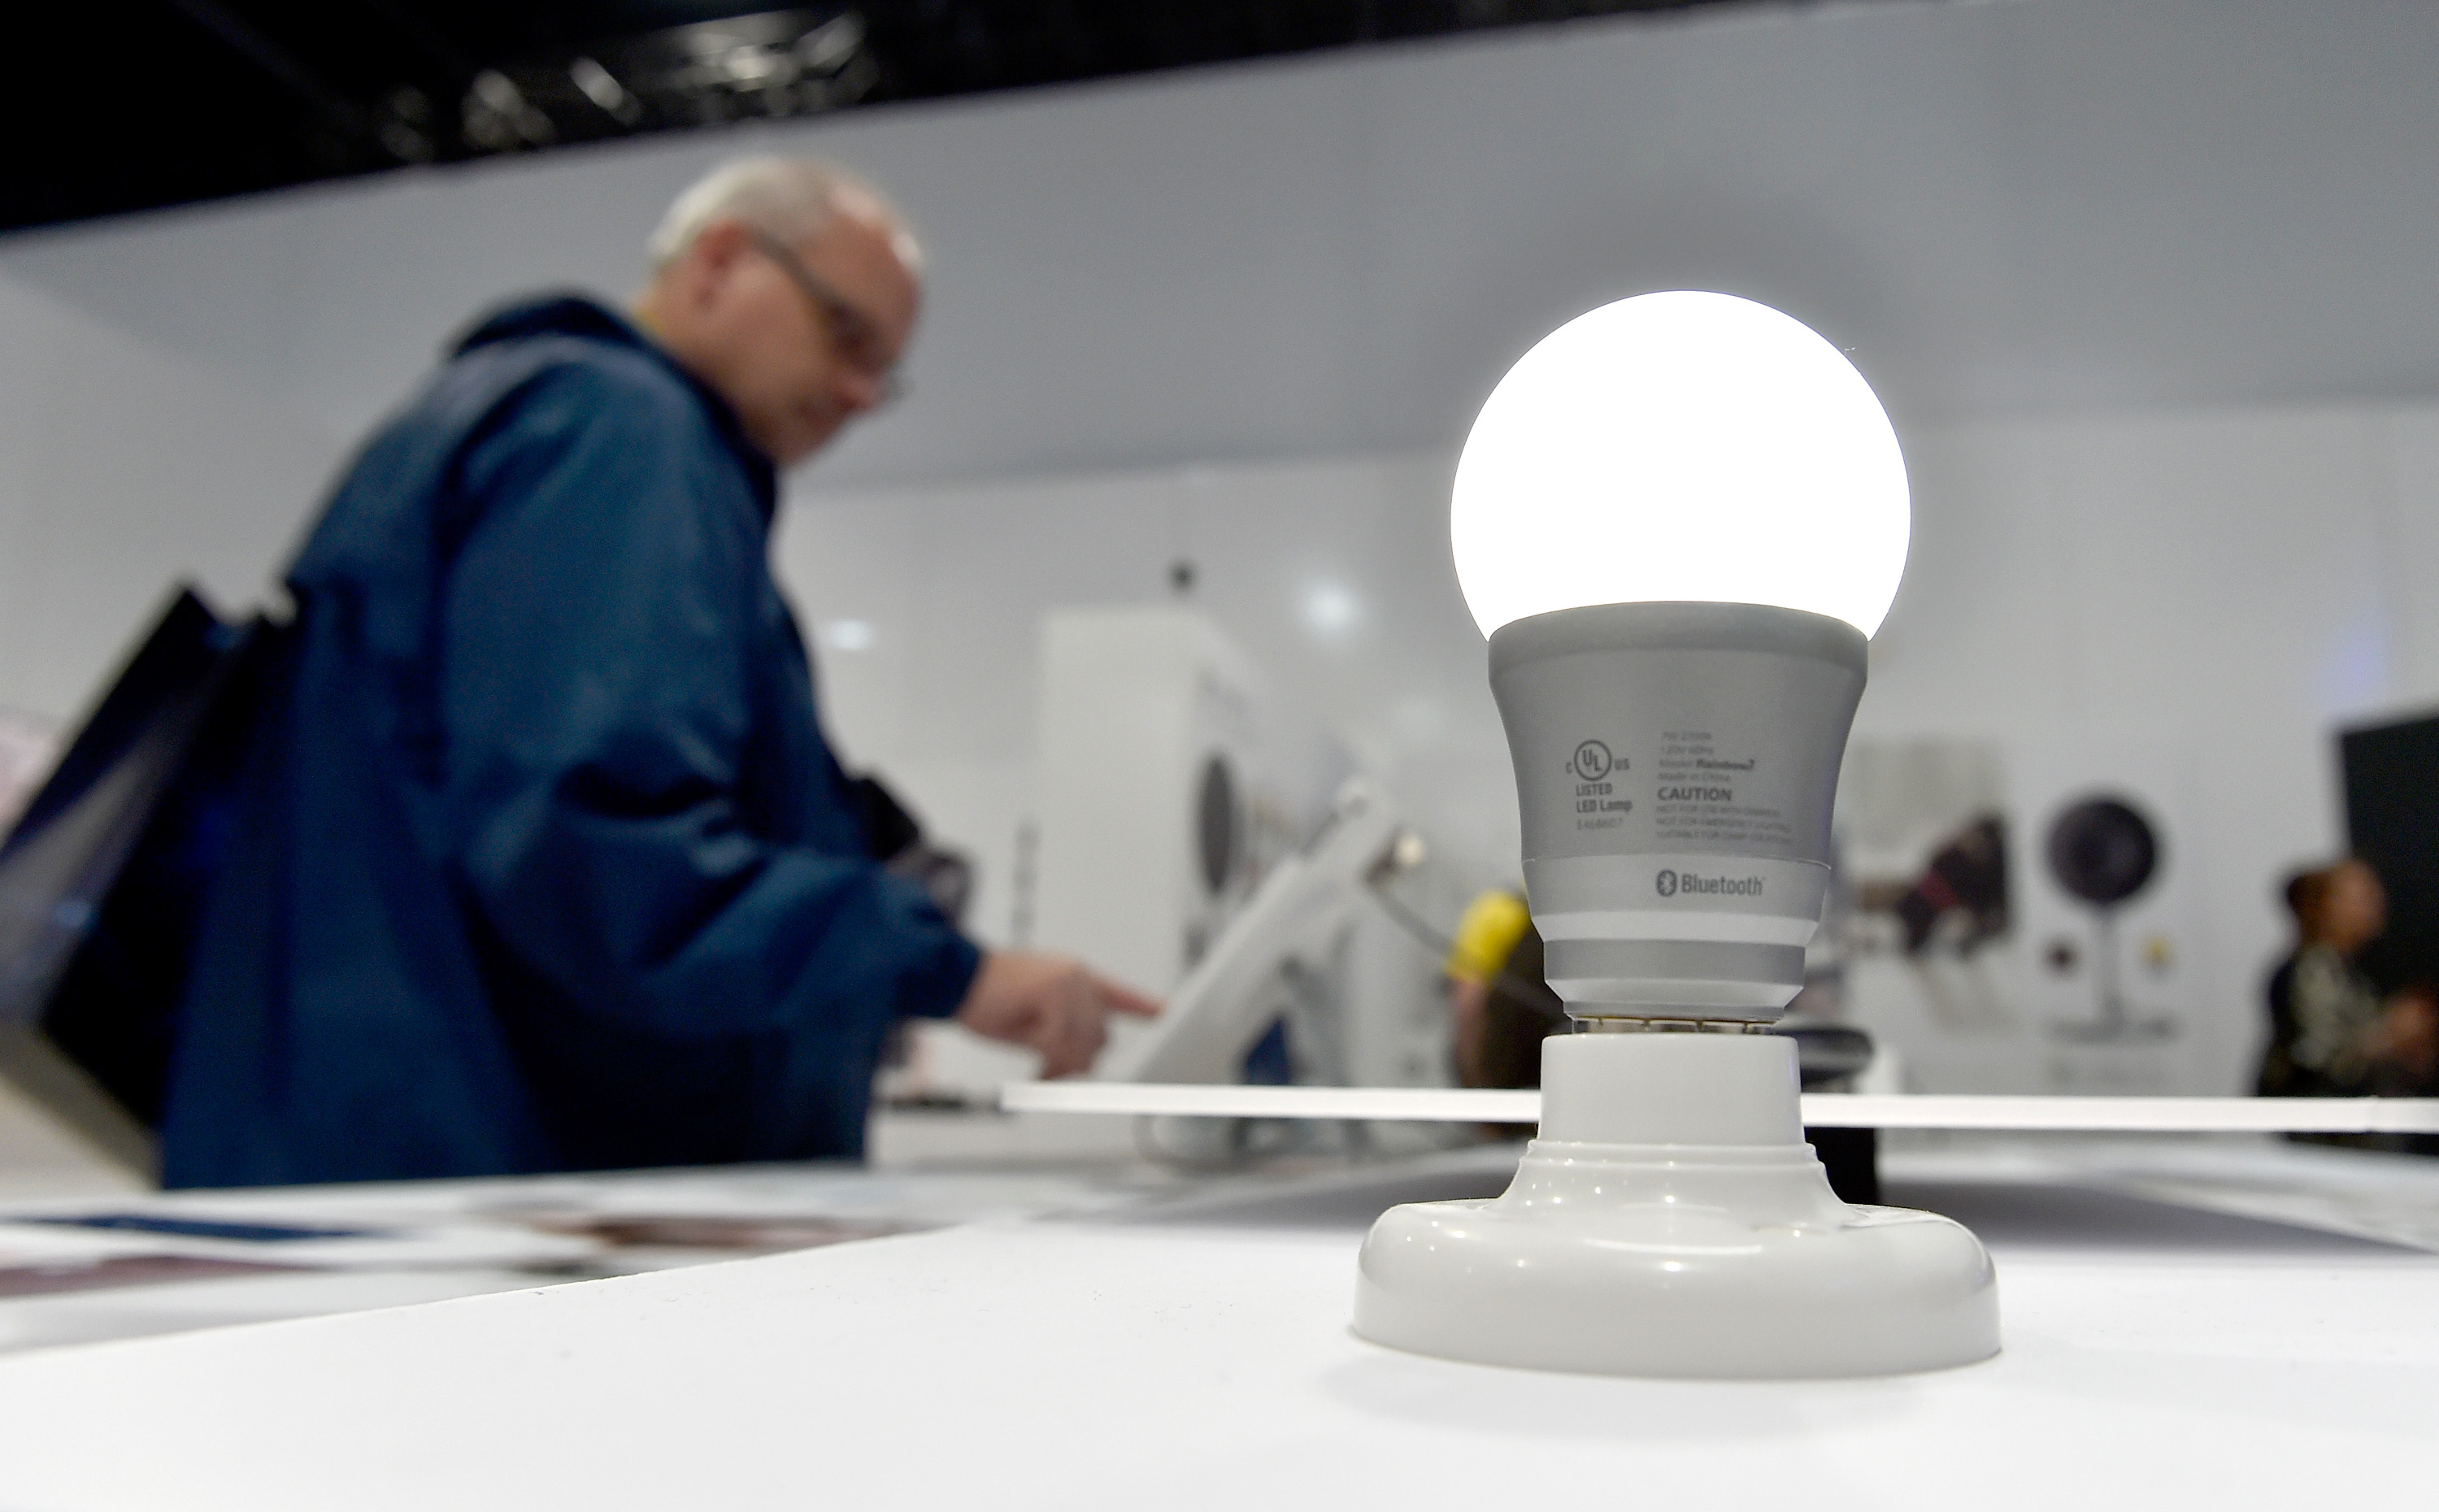 Lightbulbs are actually a great example of how the U.S. can reduce emissions